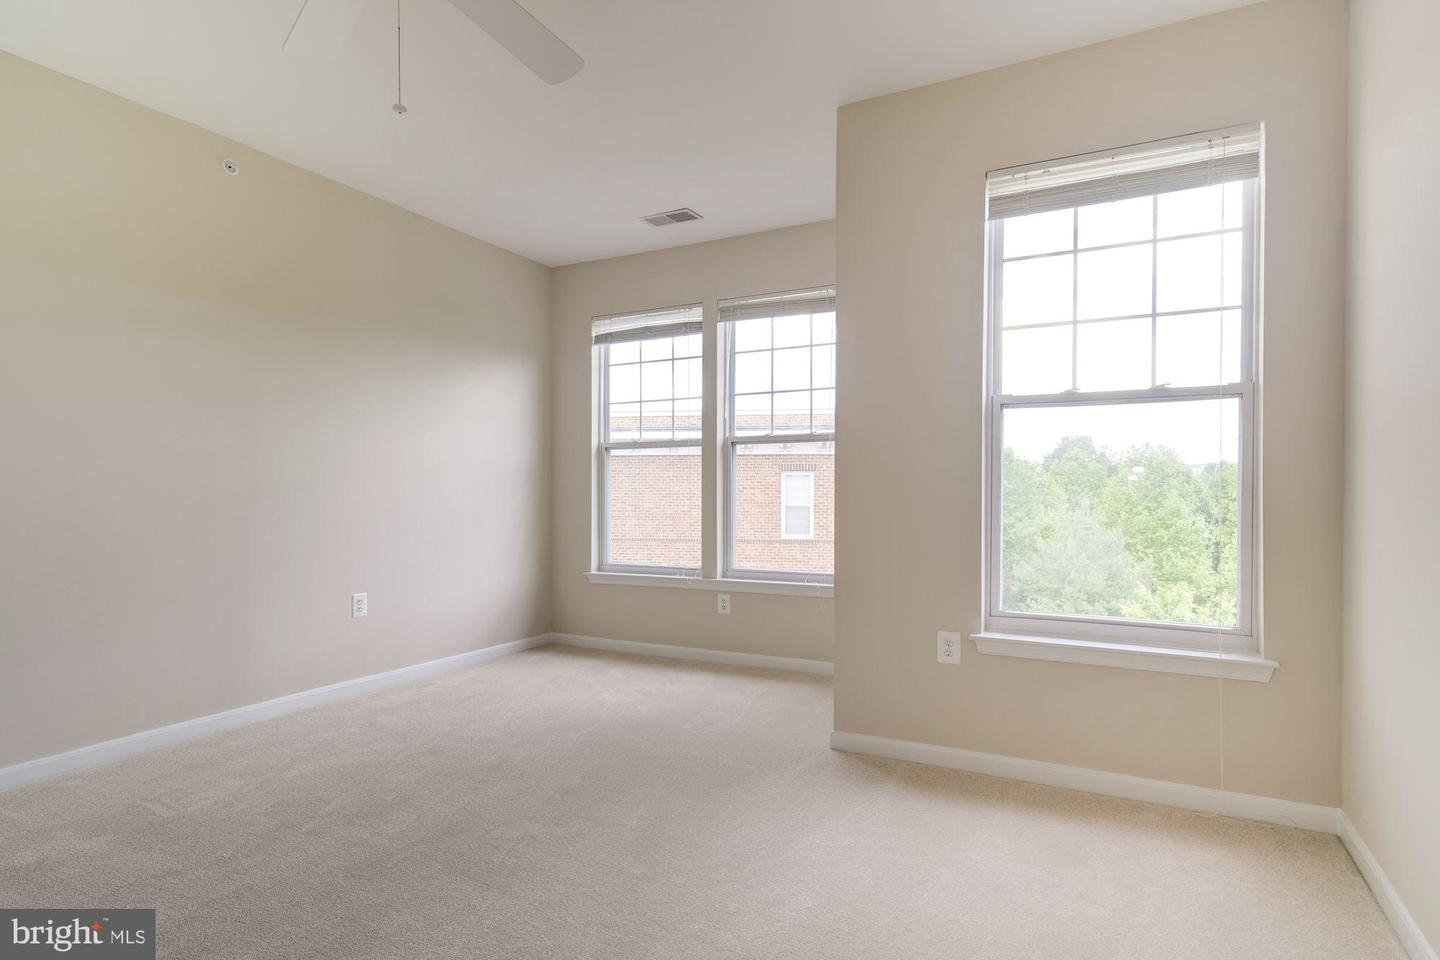 Additional photo for property listing at 110 Chevy Chase St #404 Gaithersburg, Maryland 20878 United States